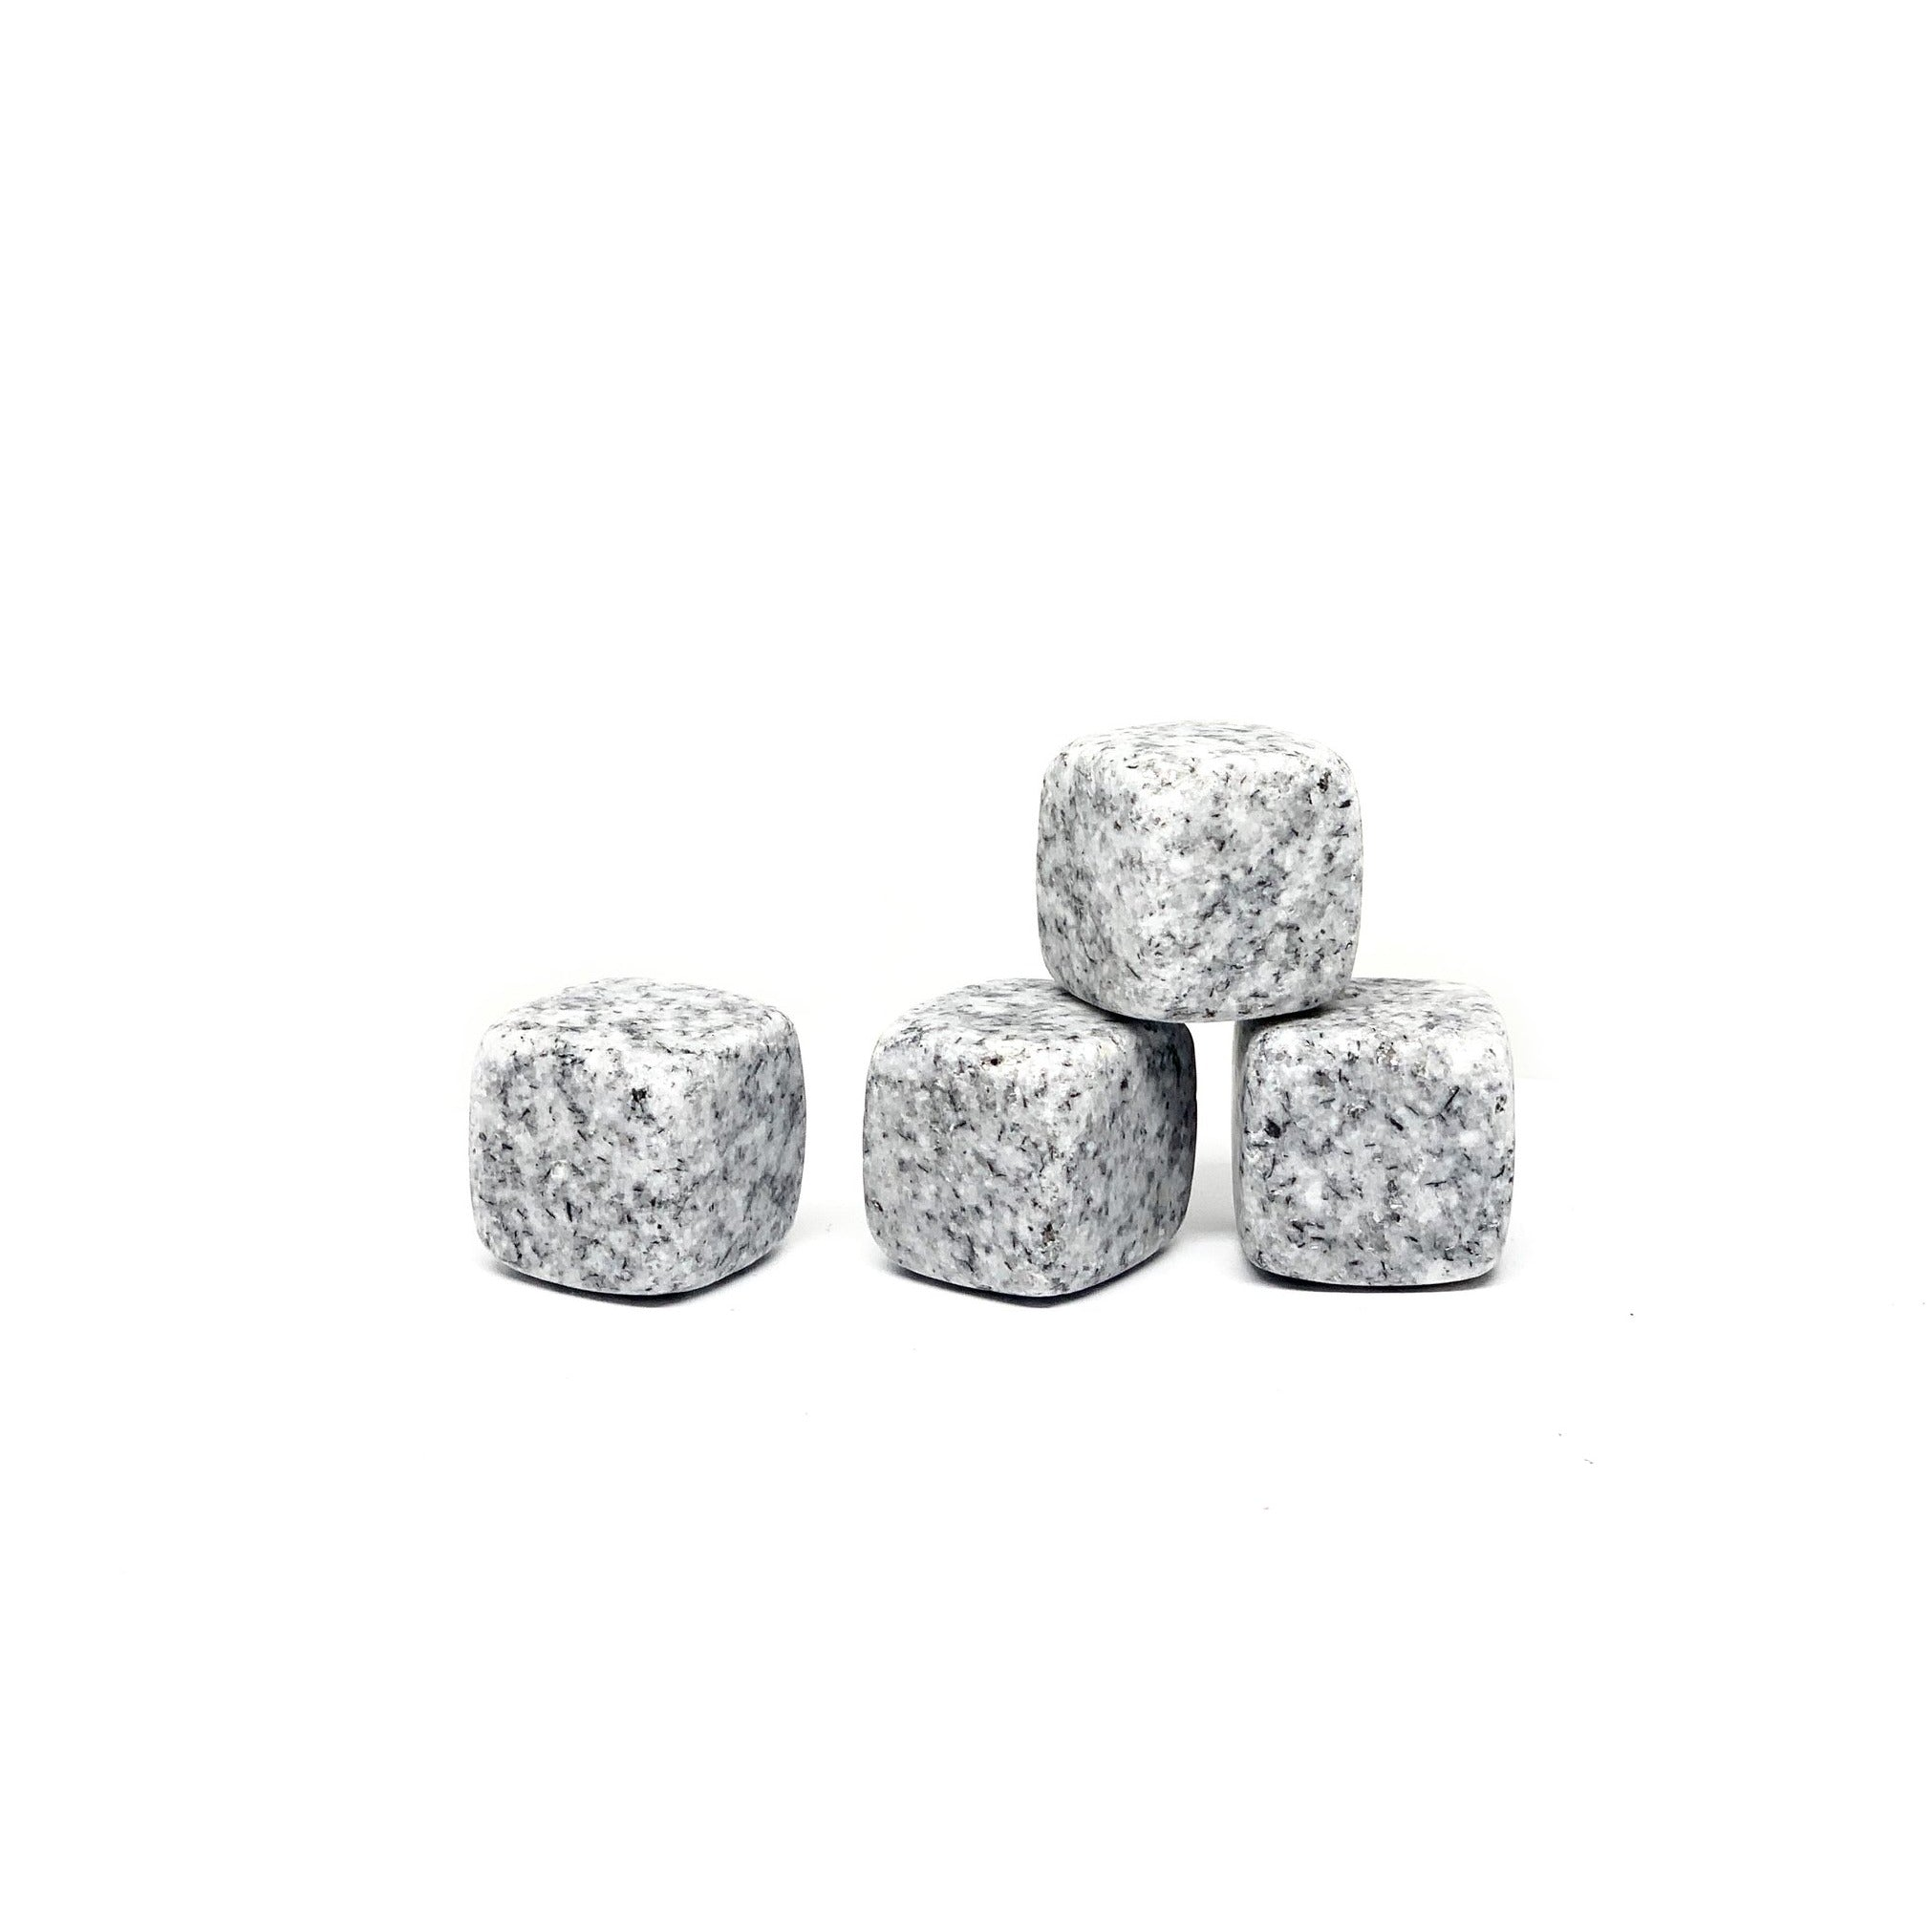 Atlas Small Whisky Stones